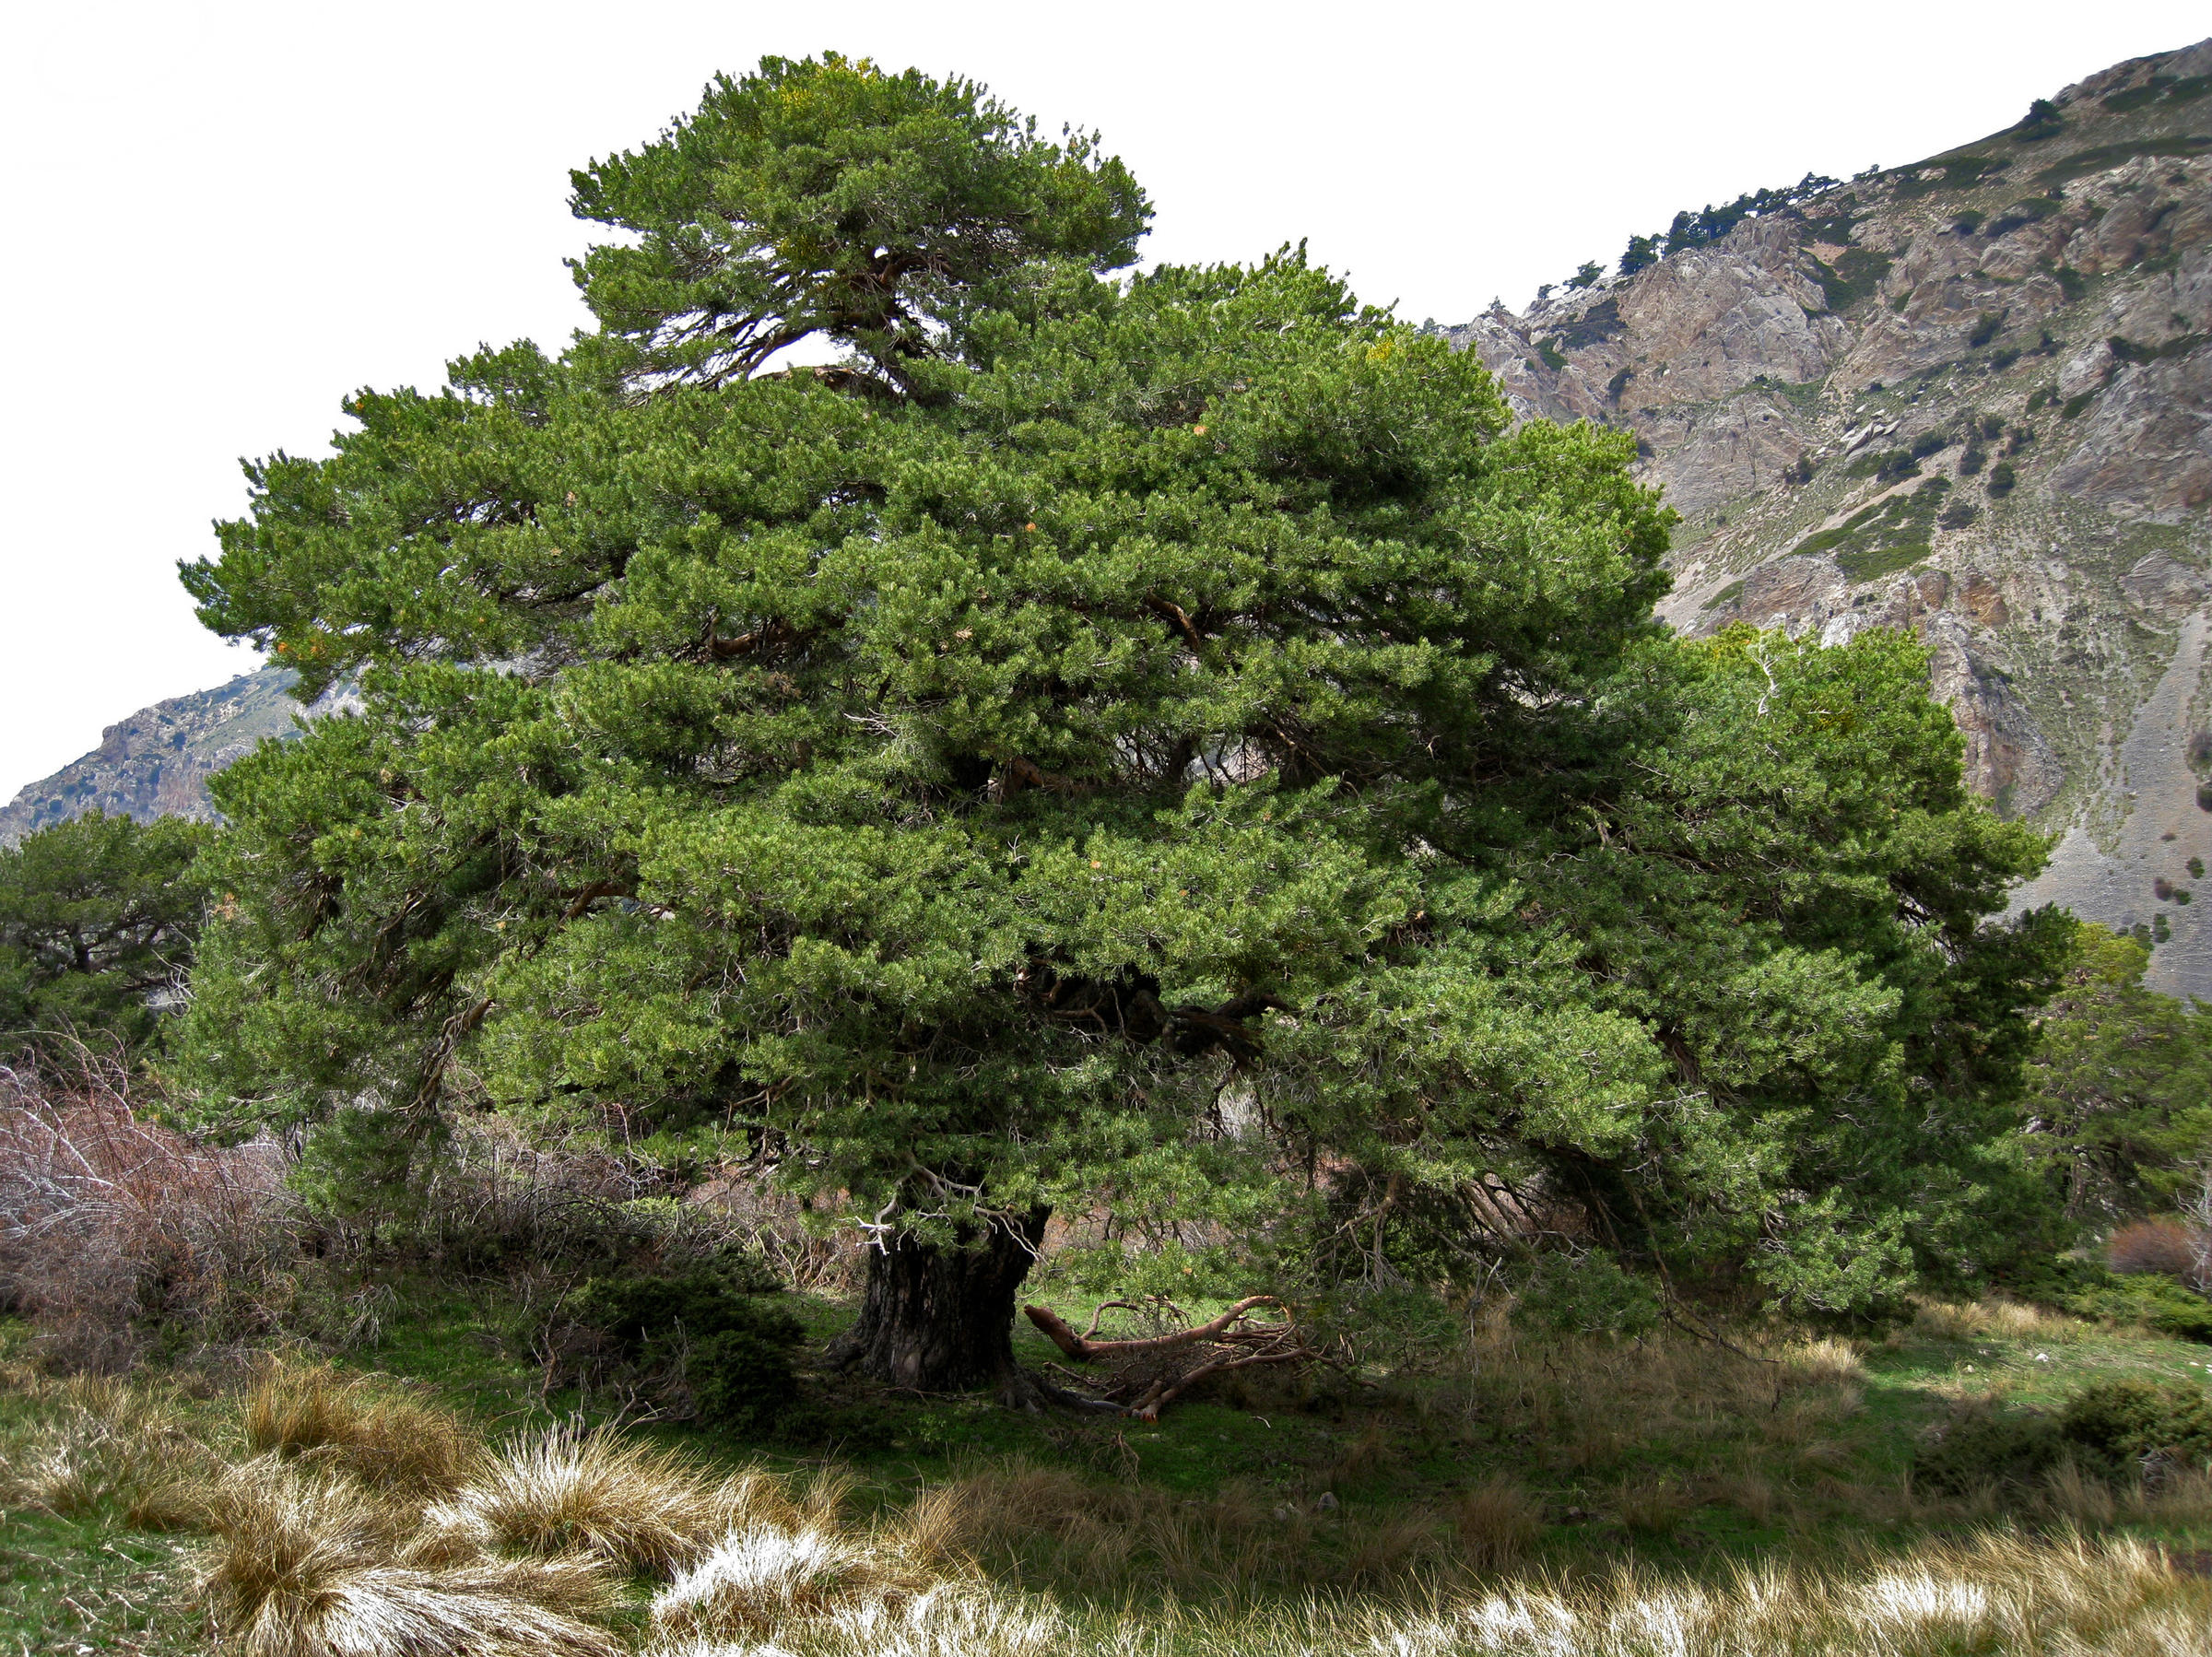 The World S Gest Trees Such As This Large Scots Pine In Spain Sierra De Baza View Slideshow 1 Of 2